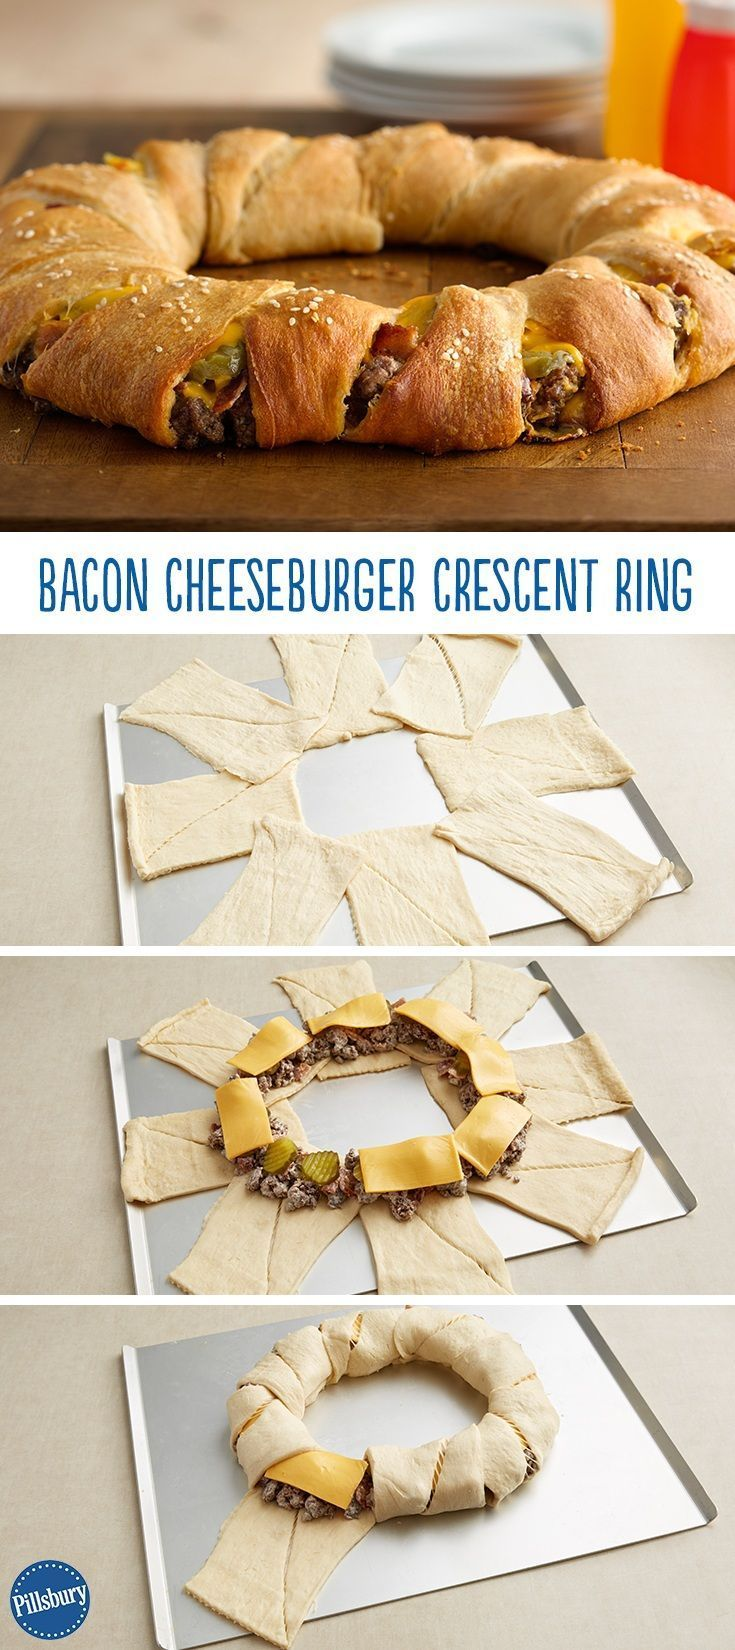 We have officially found something better than any old burger – a Bacon Cheeseburger Crescent Ring! Simply wrap crescent dough around your favorite burger ingredients and dinner is served.